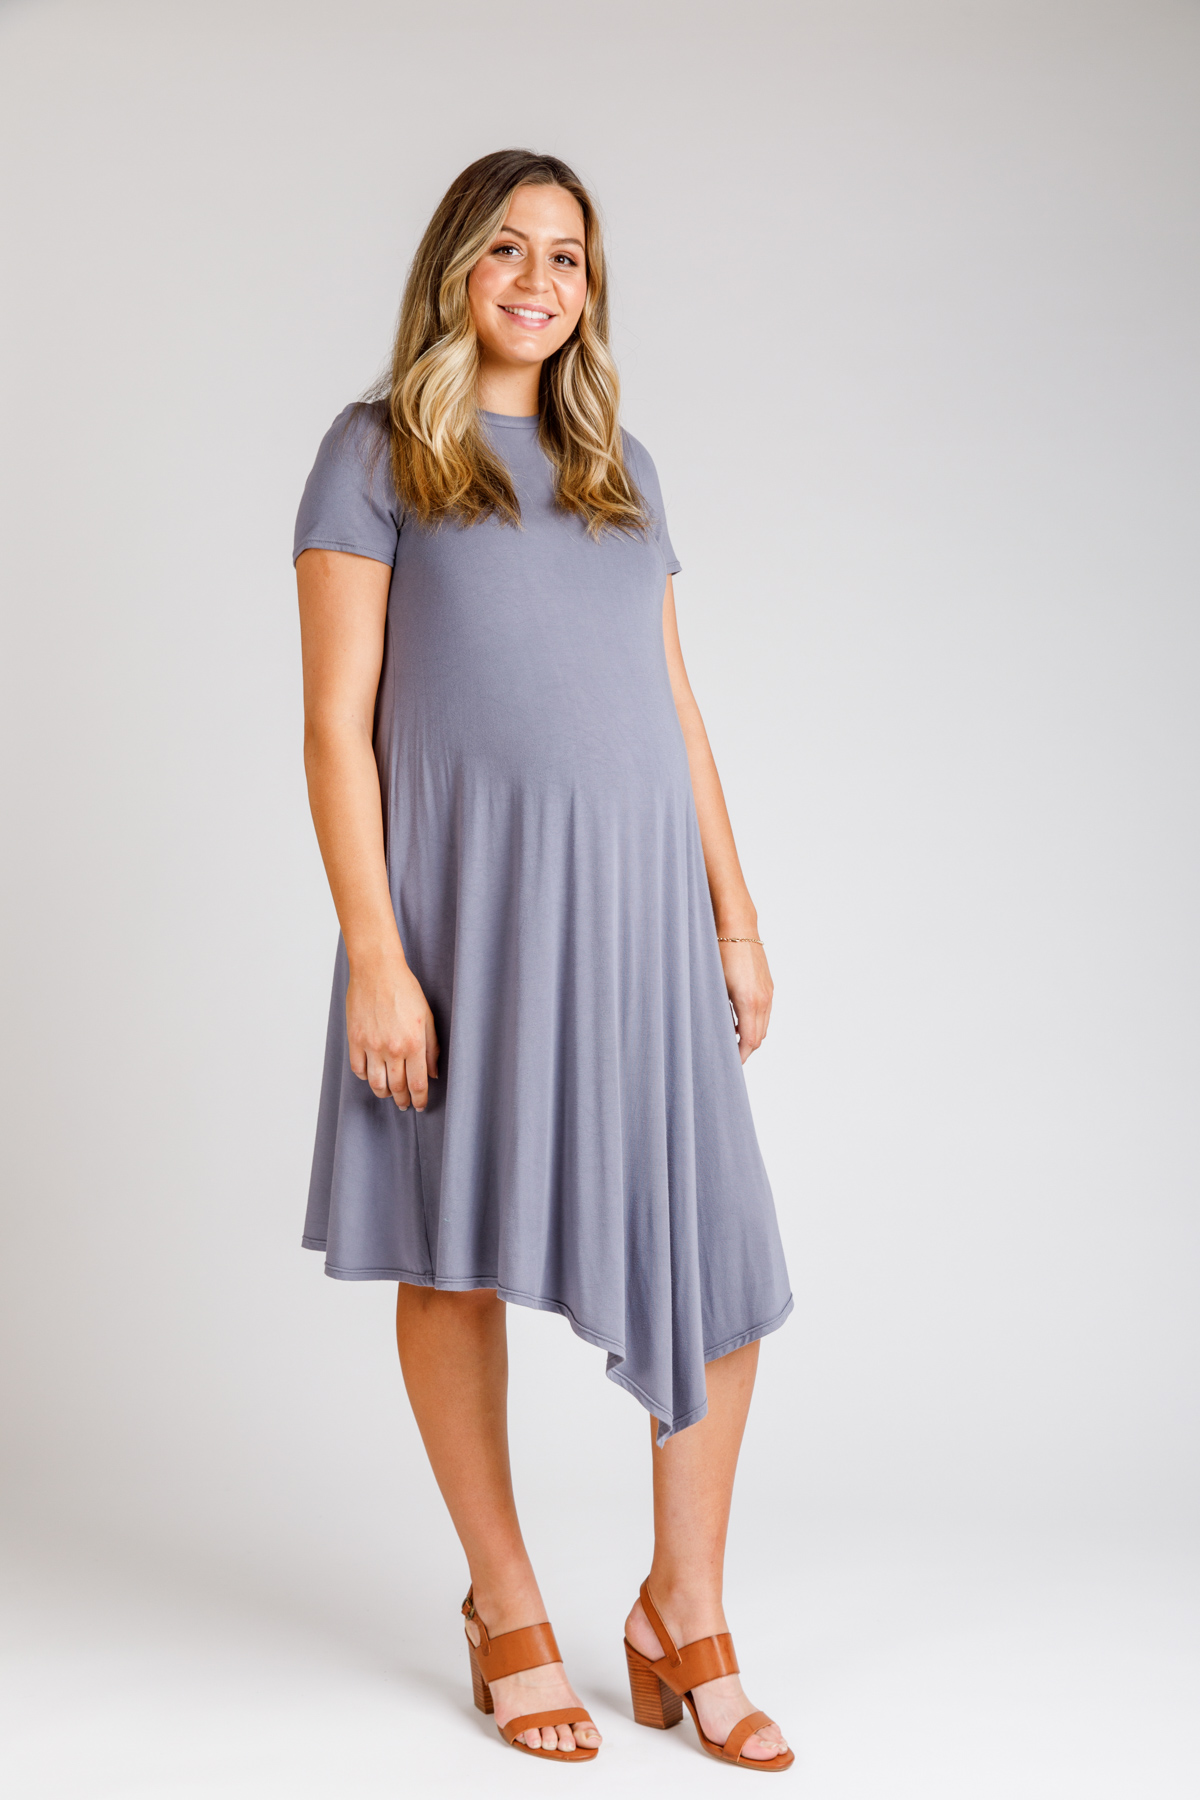 Try the Floreat dress and top pattern as maternity wear!